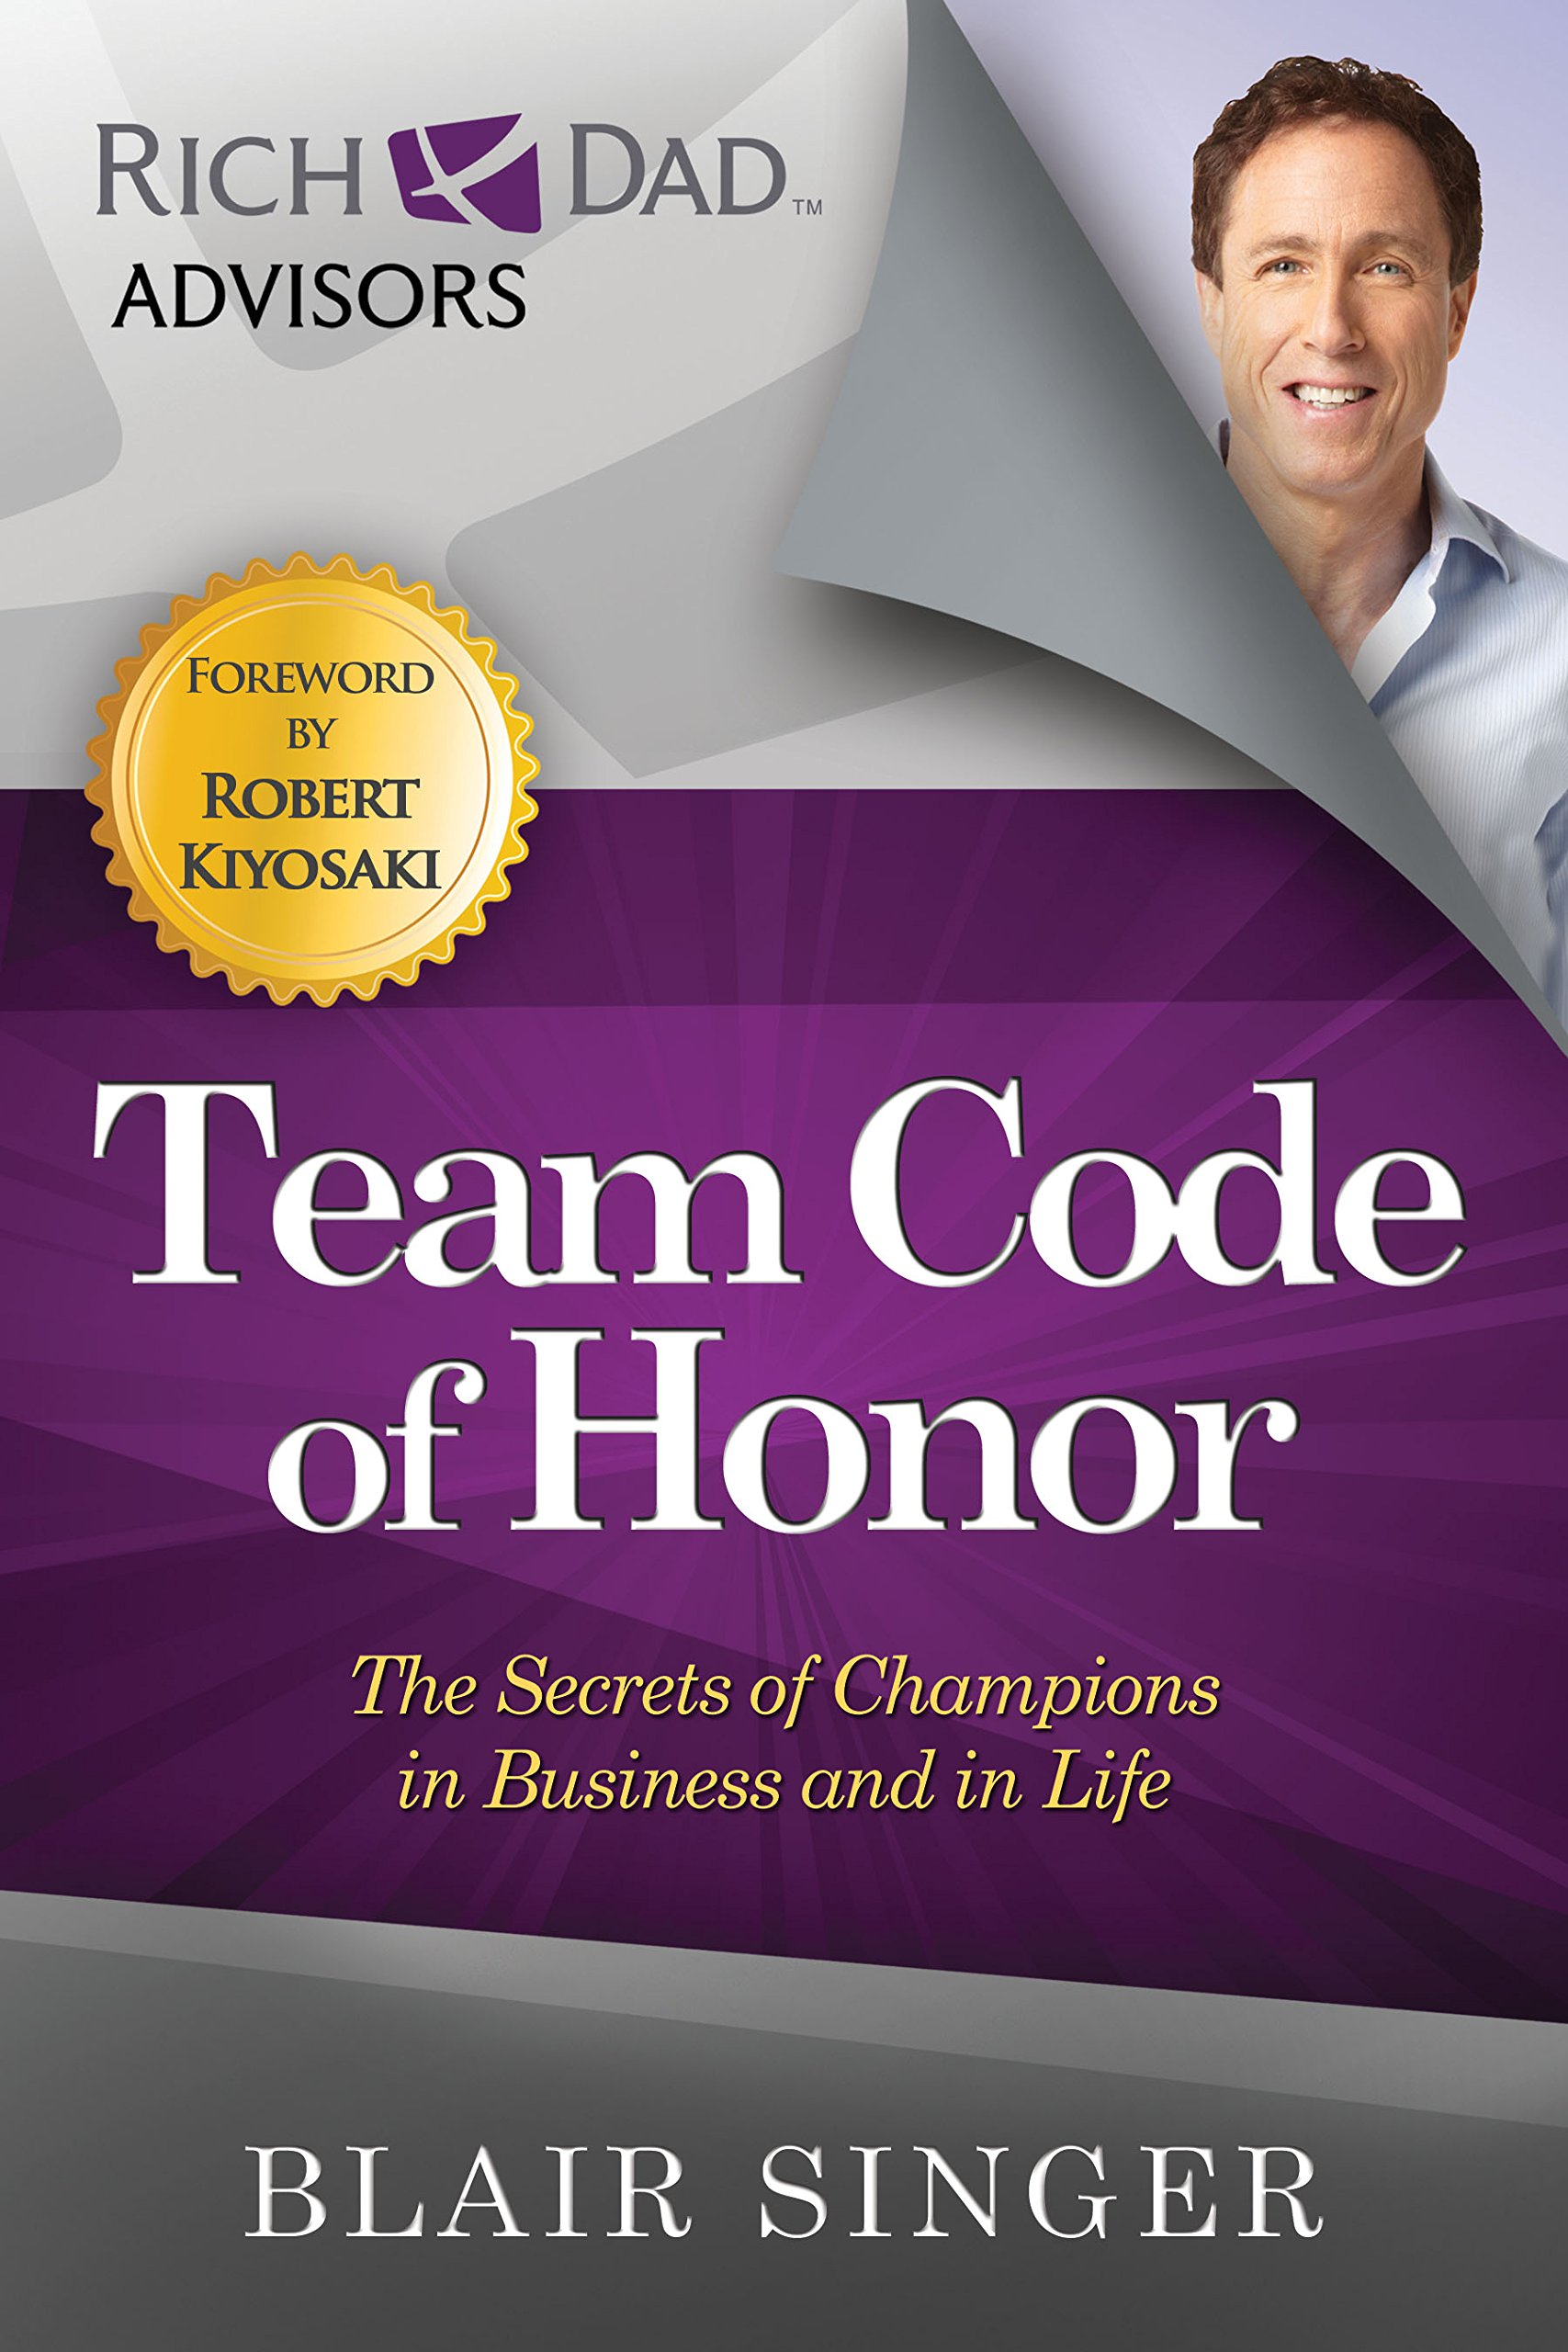 Read Online Team Code of Honor: The Secrets of Champions in Business and in Life (Rich Dad's Advisors (Paperback)) ebook